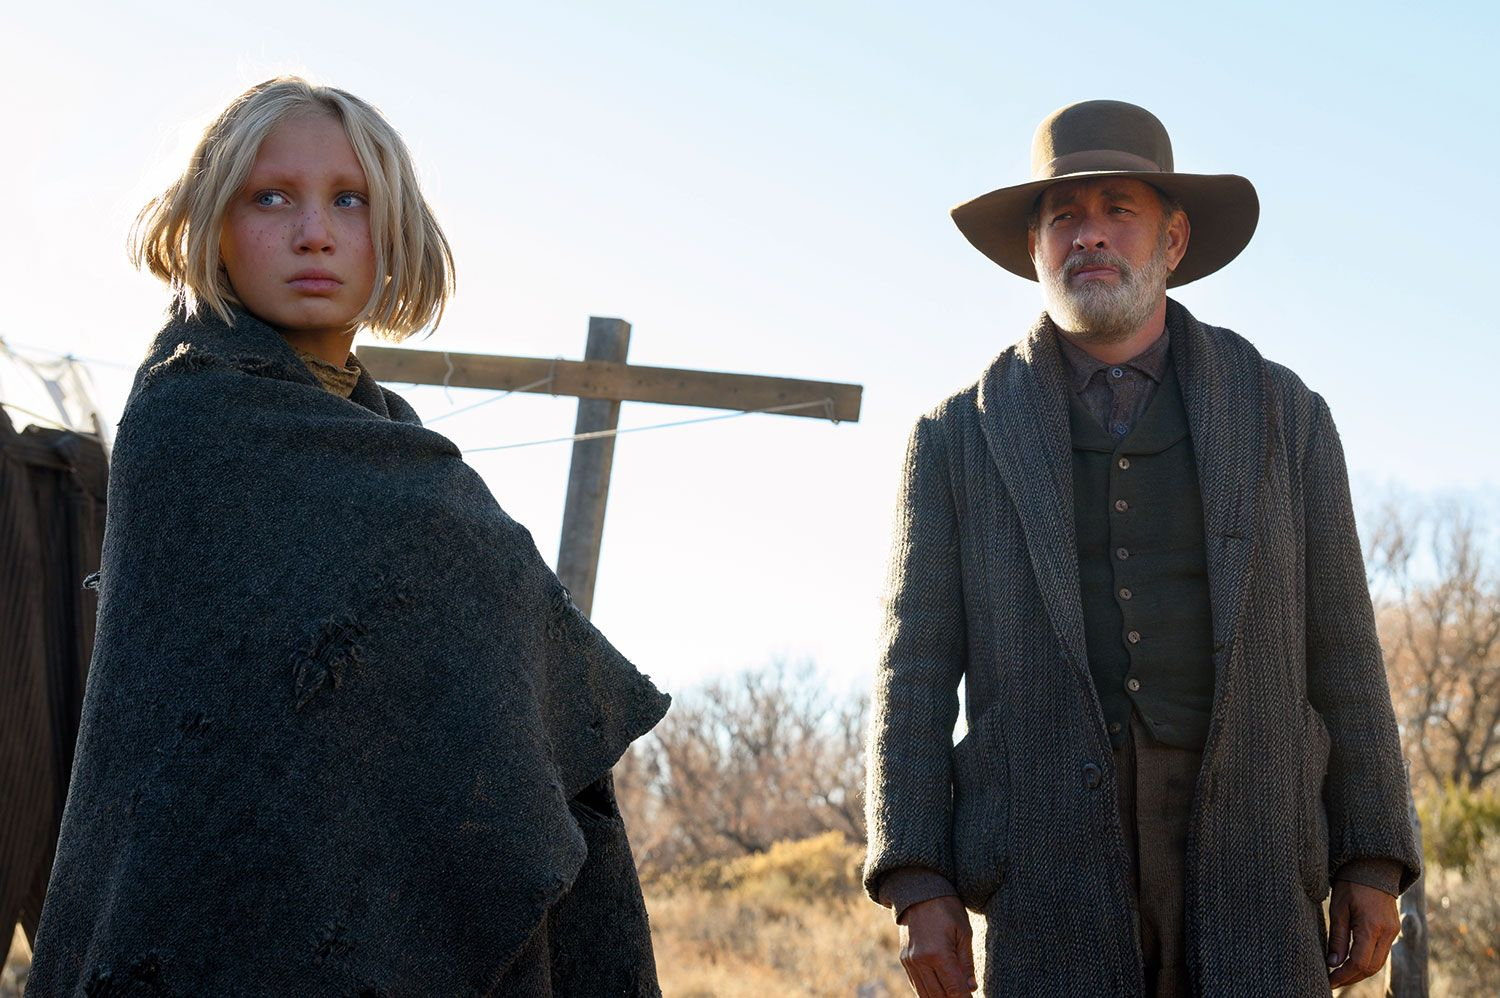 First Trailer For Paul Greengrass News Of The World Sets Tom Hanks On A Western Adventure